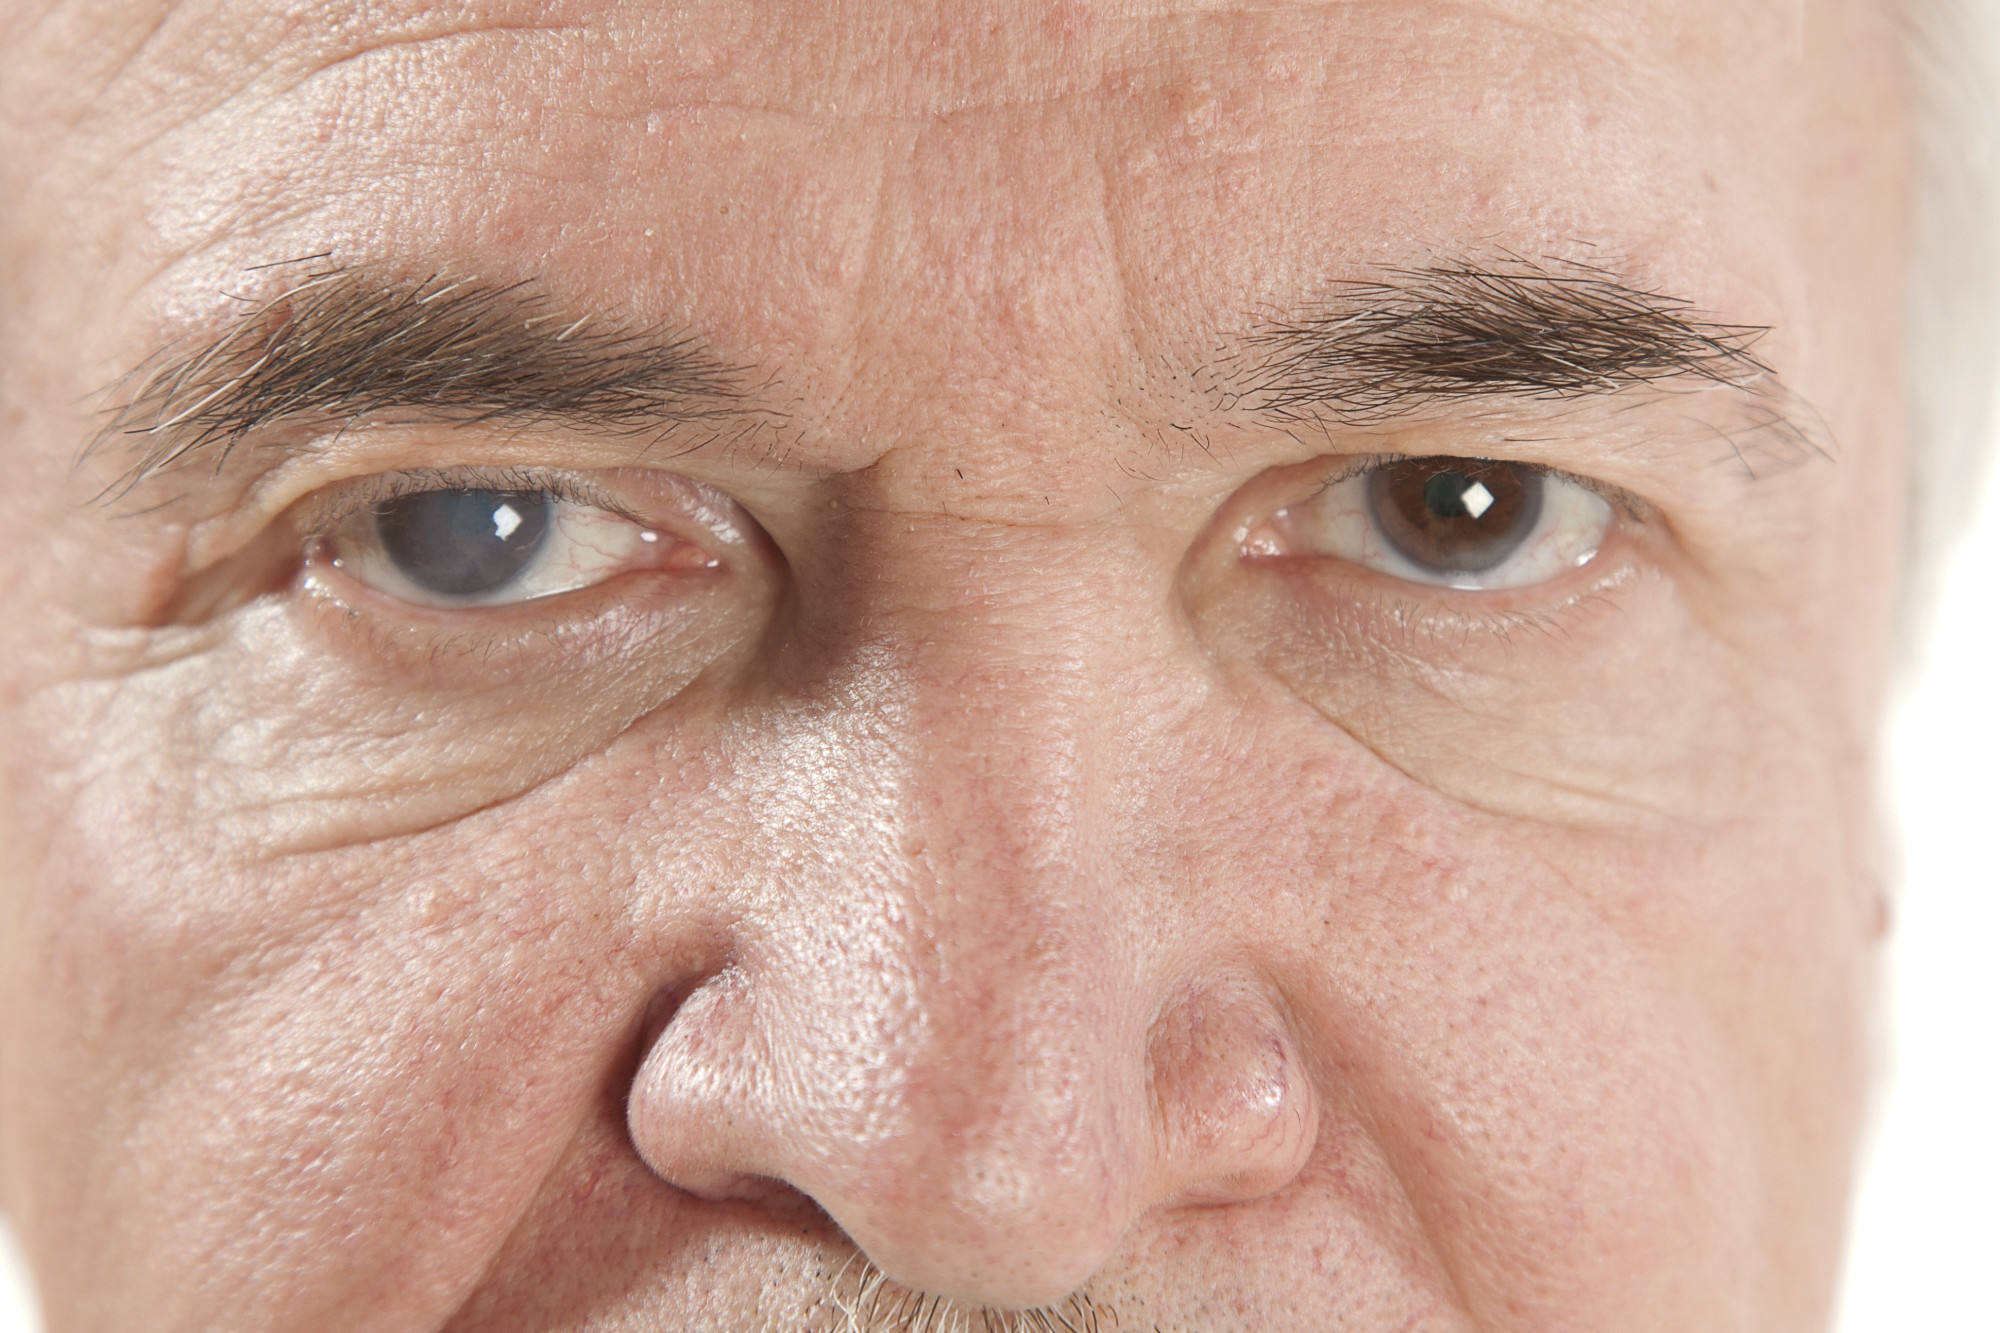 a man's eyes with cataracts